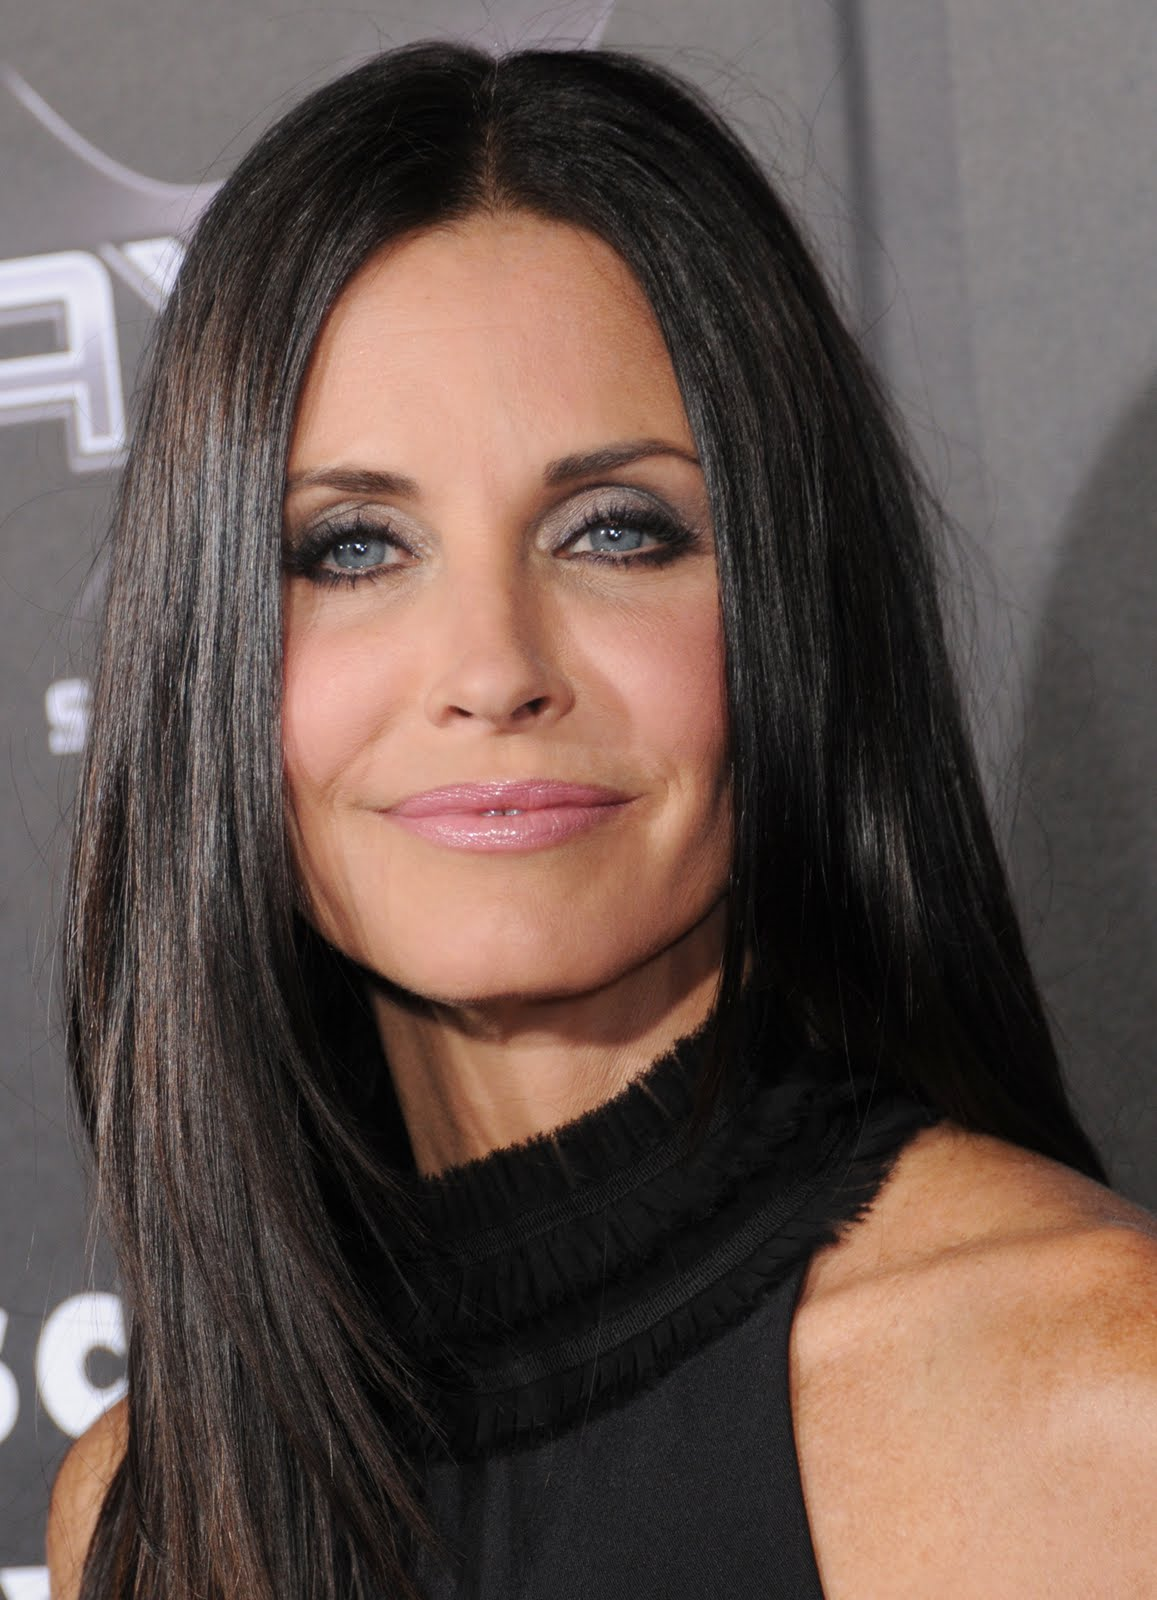 nudes of courtney cox